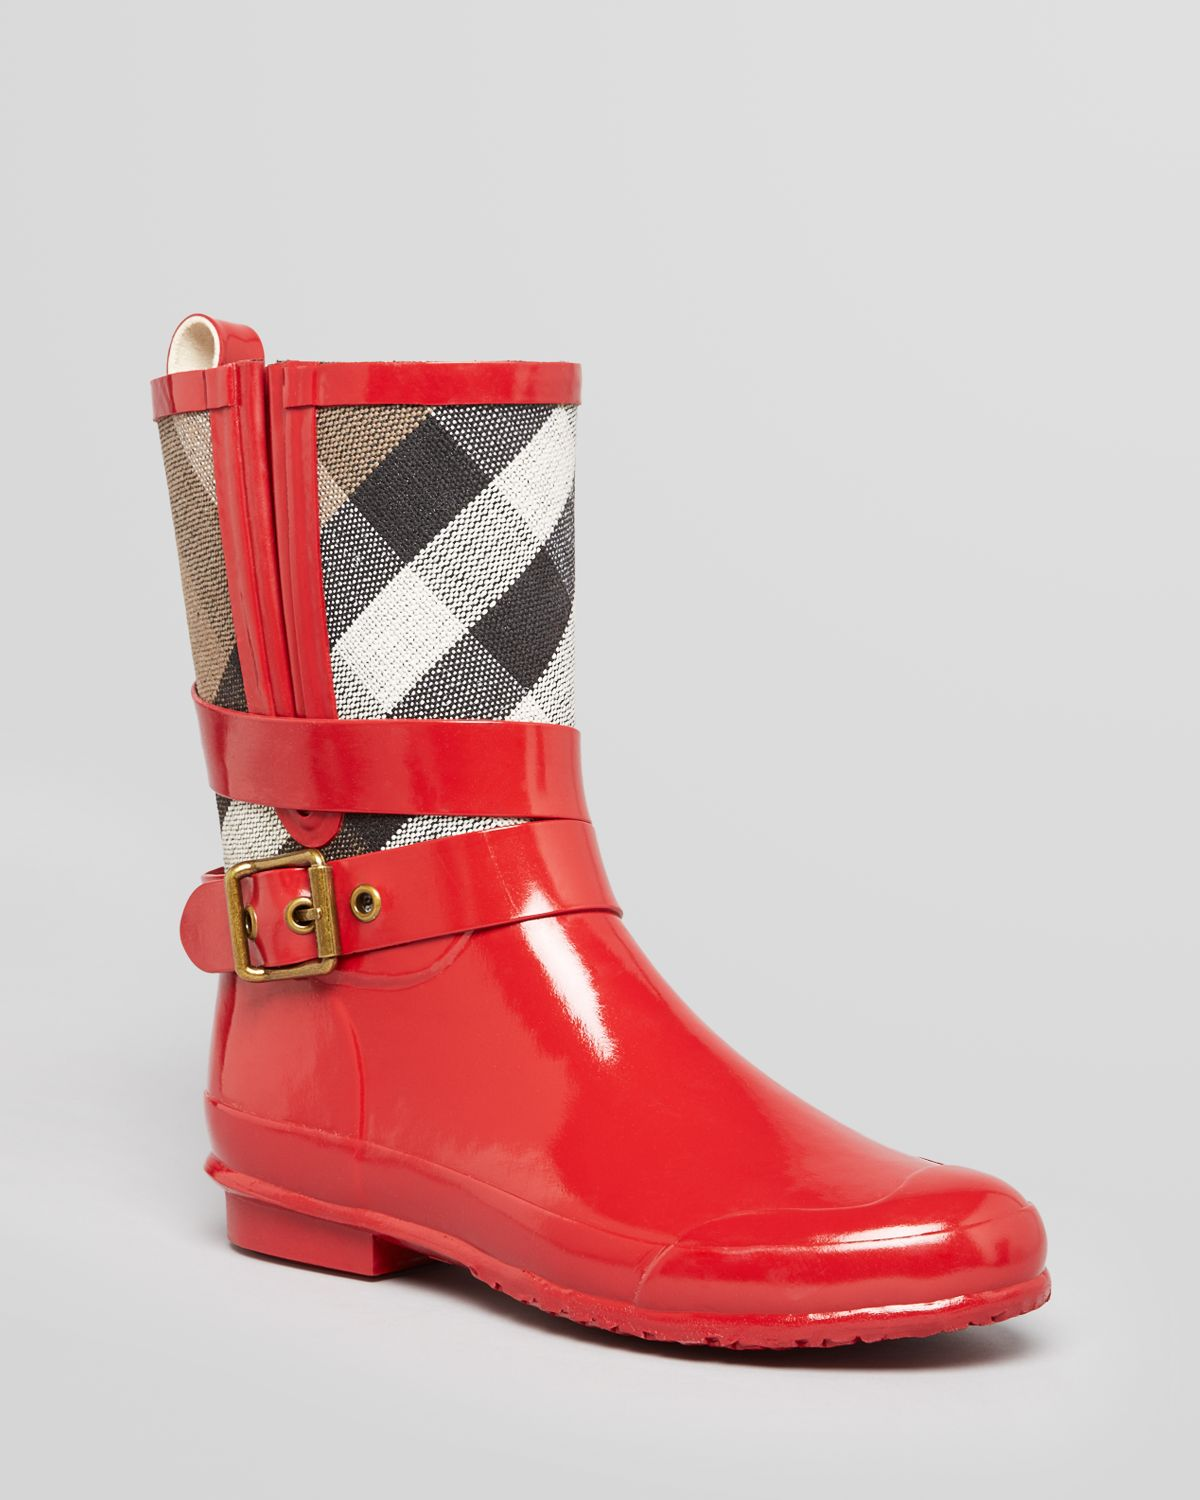 burberry rain boots red Online Shopping